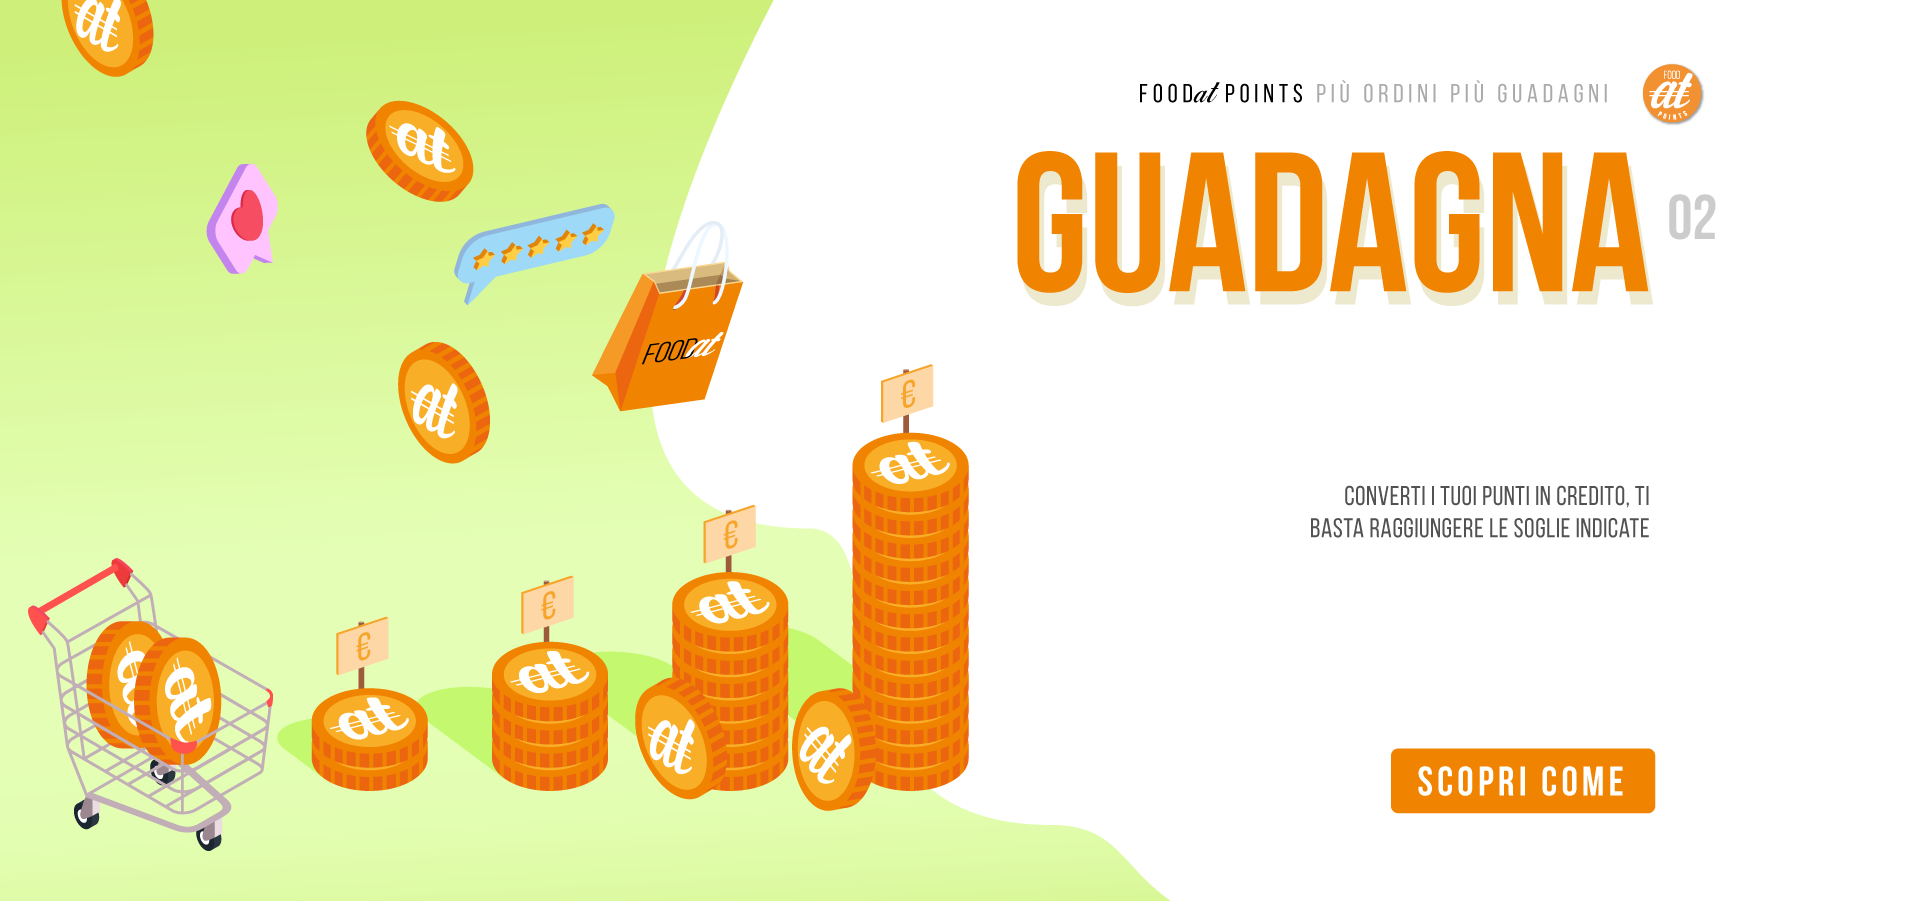 02 GUADAGNA – foodat points